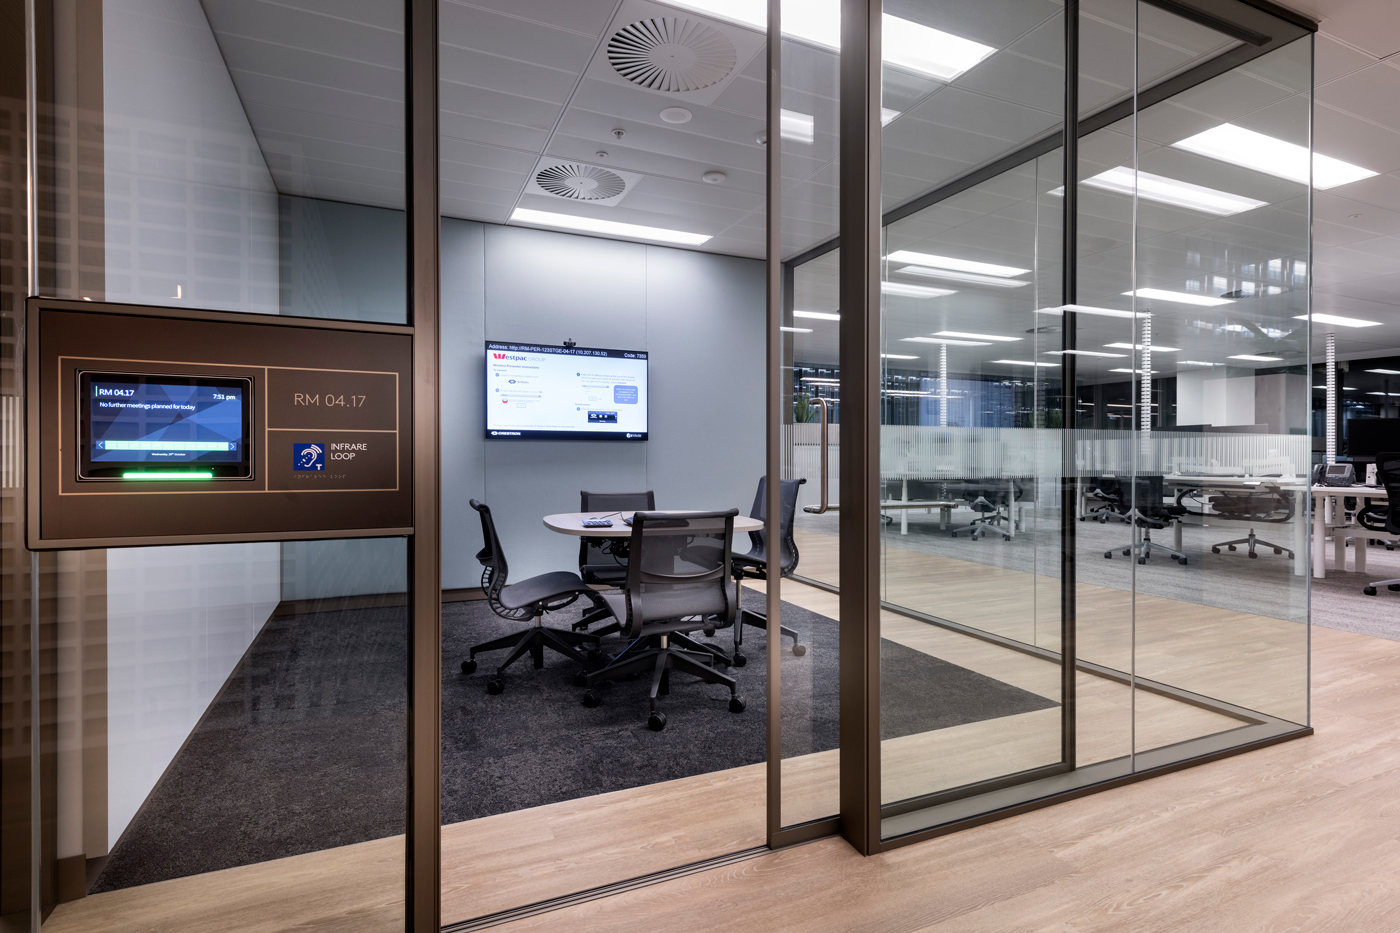 jeb_group-partitions-x-series-westpac-office-au-02.jpg